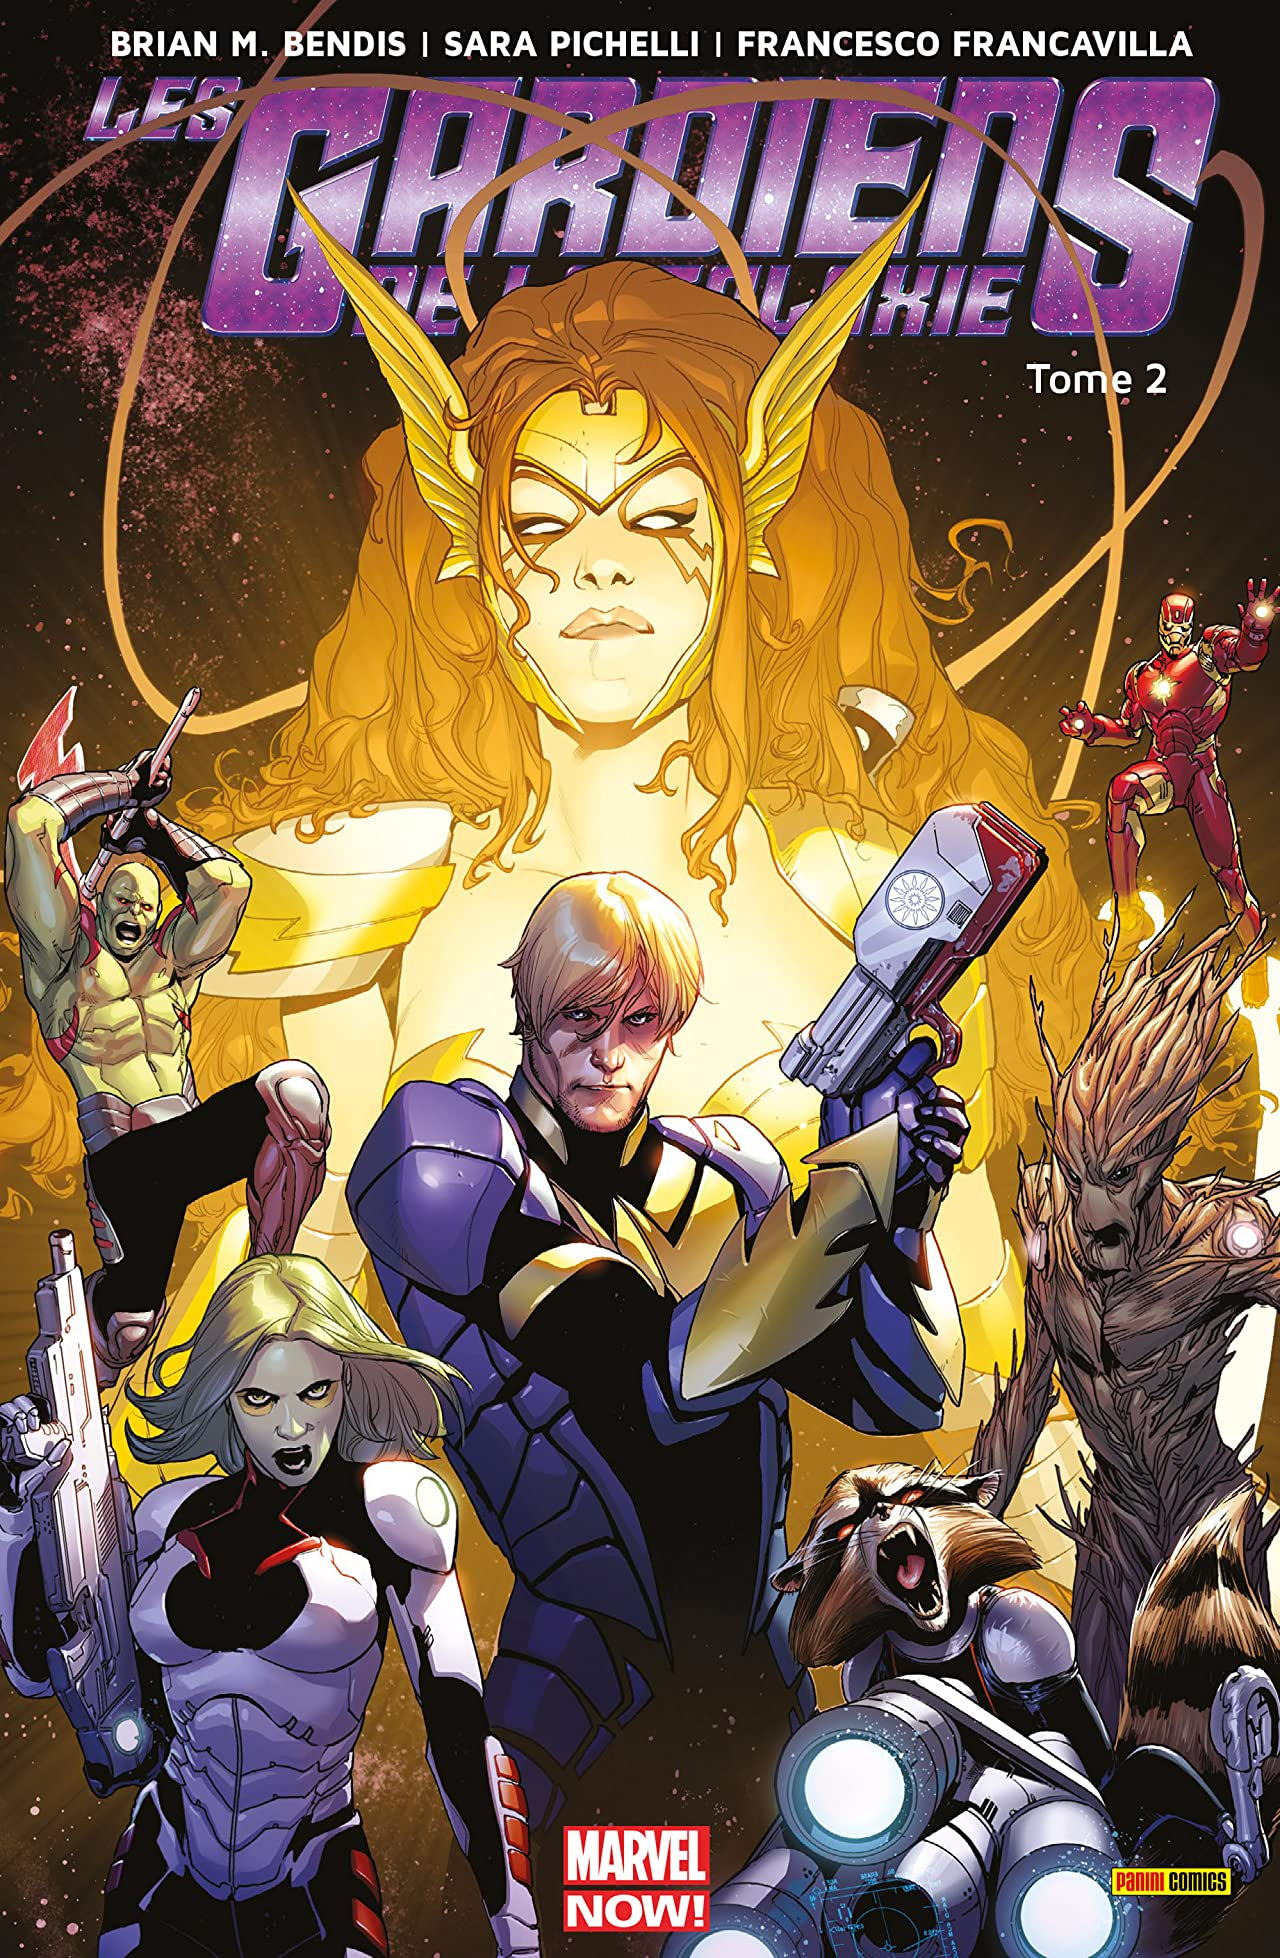 Les Gardiens De La Galaxie: Marvel Now! Vol. 2: Angela